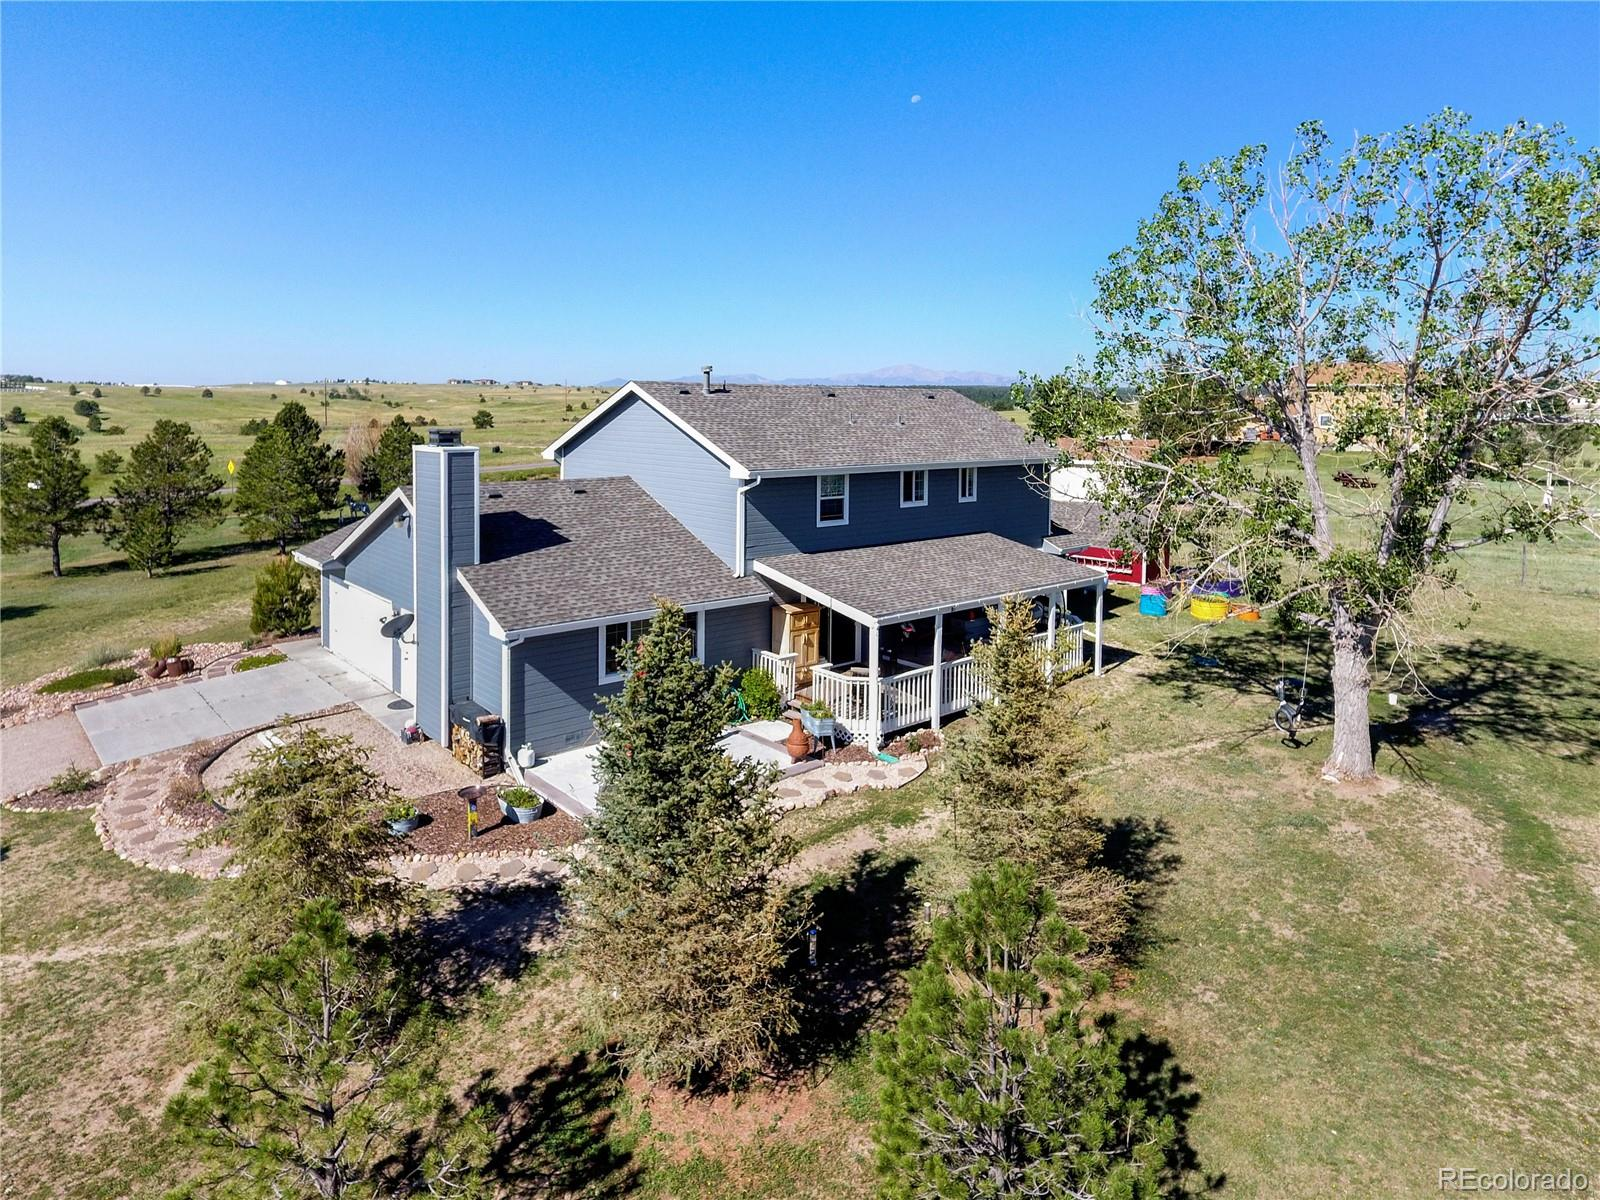 MLS# 7089085 - 40 - 13885 Halleluiah Trail, Elbert, CO 80106